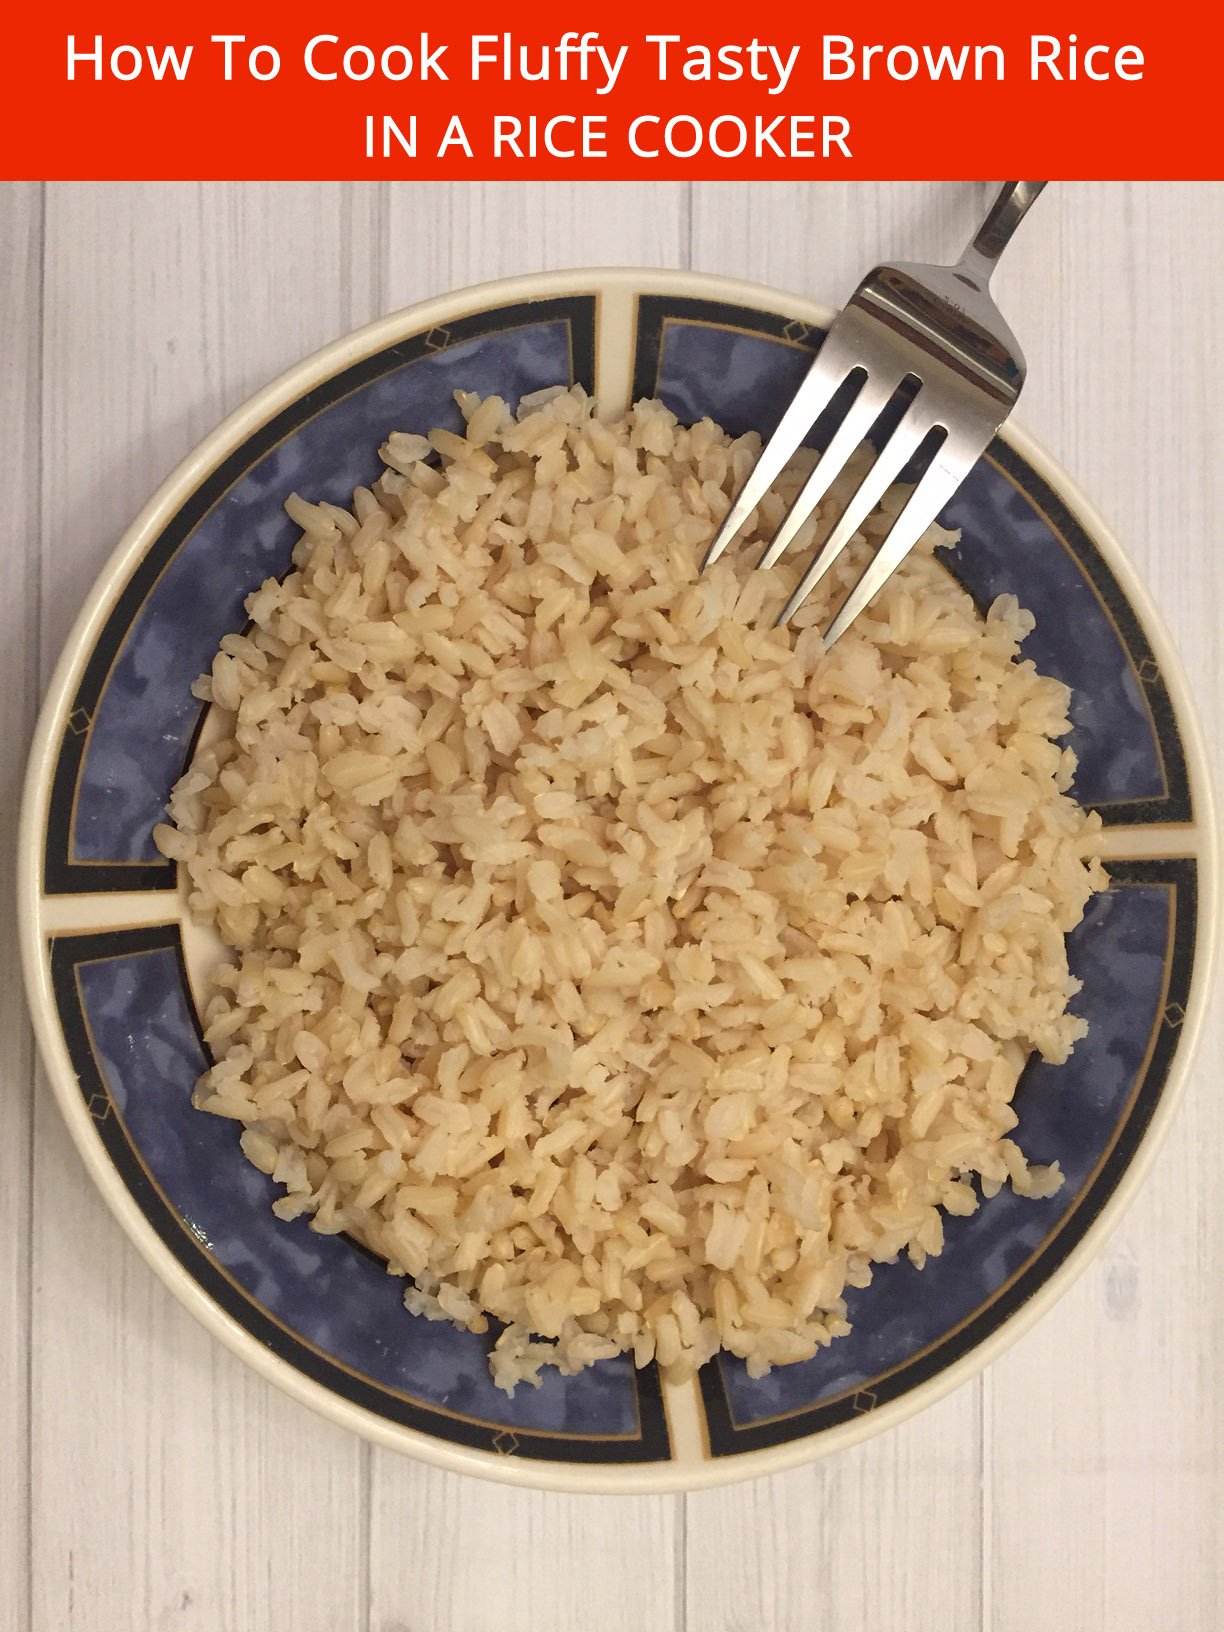 How To Cook Fluffy Tasty Brown Rice In A Rice Cooker ...